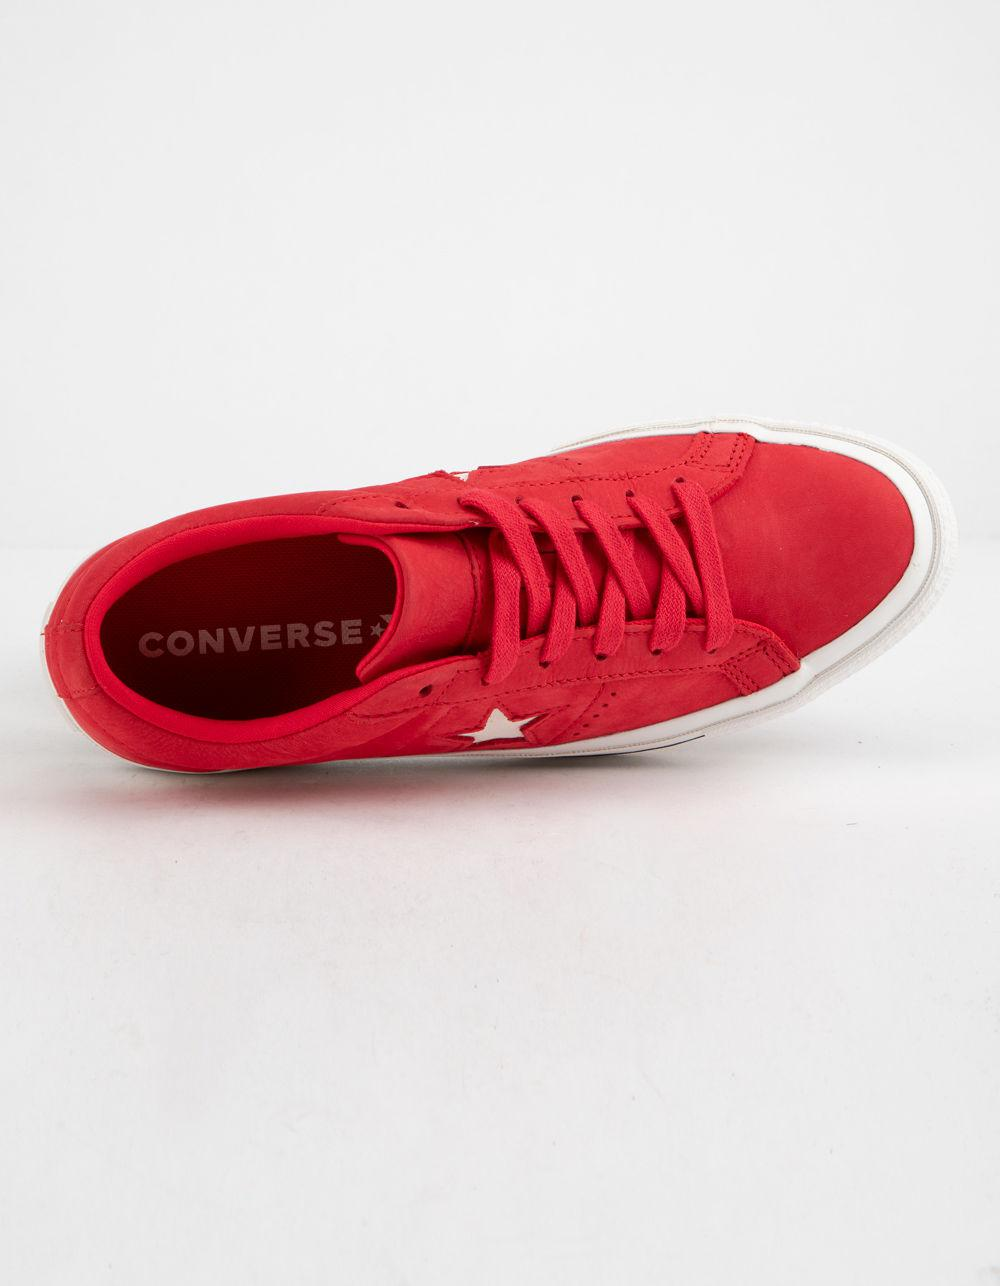 5ade17a7d0ed3e Lyst - Converse One Star Ox Cherry Red   Vintage White Womens Low ...